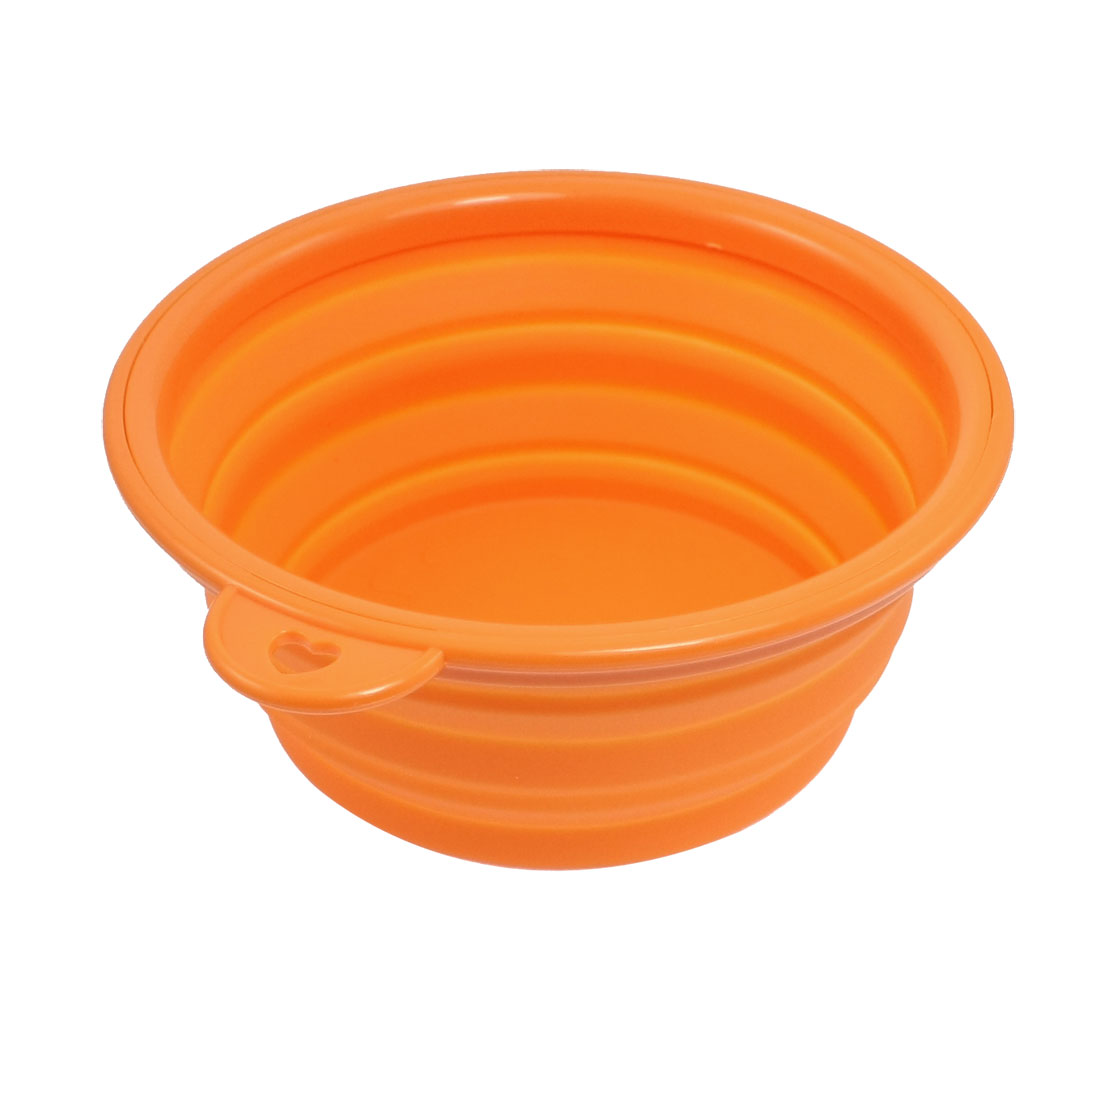 Pet Dog Cat Silicone Adjustable 3 Heights Portable Food Water Bowl Orange